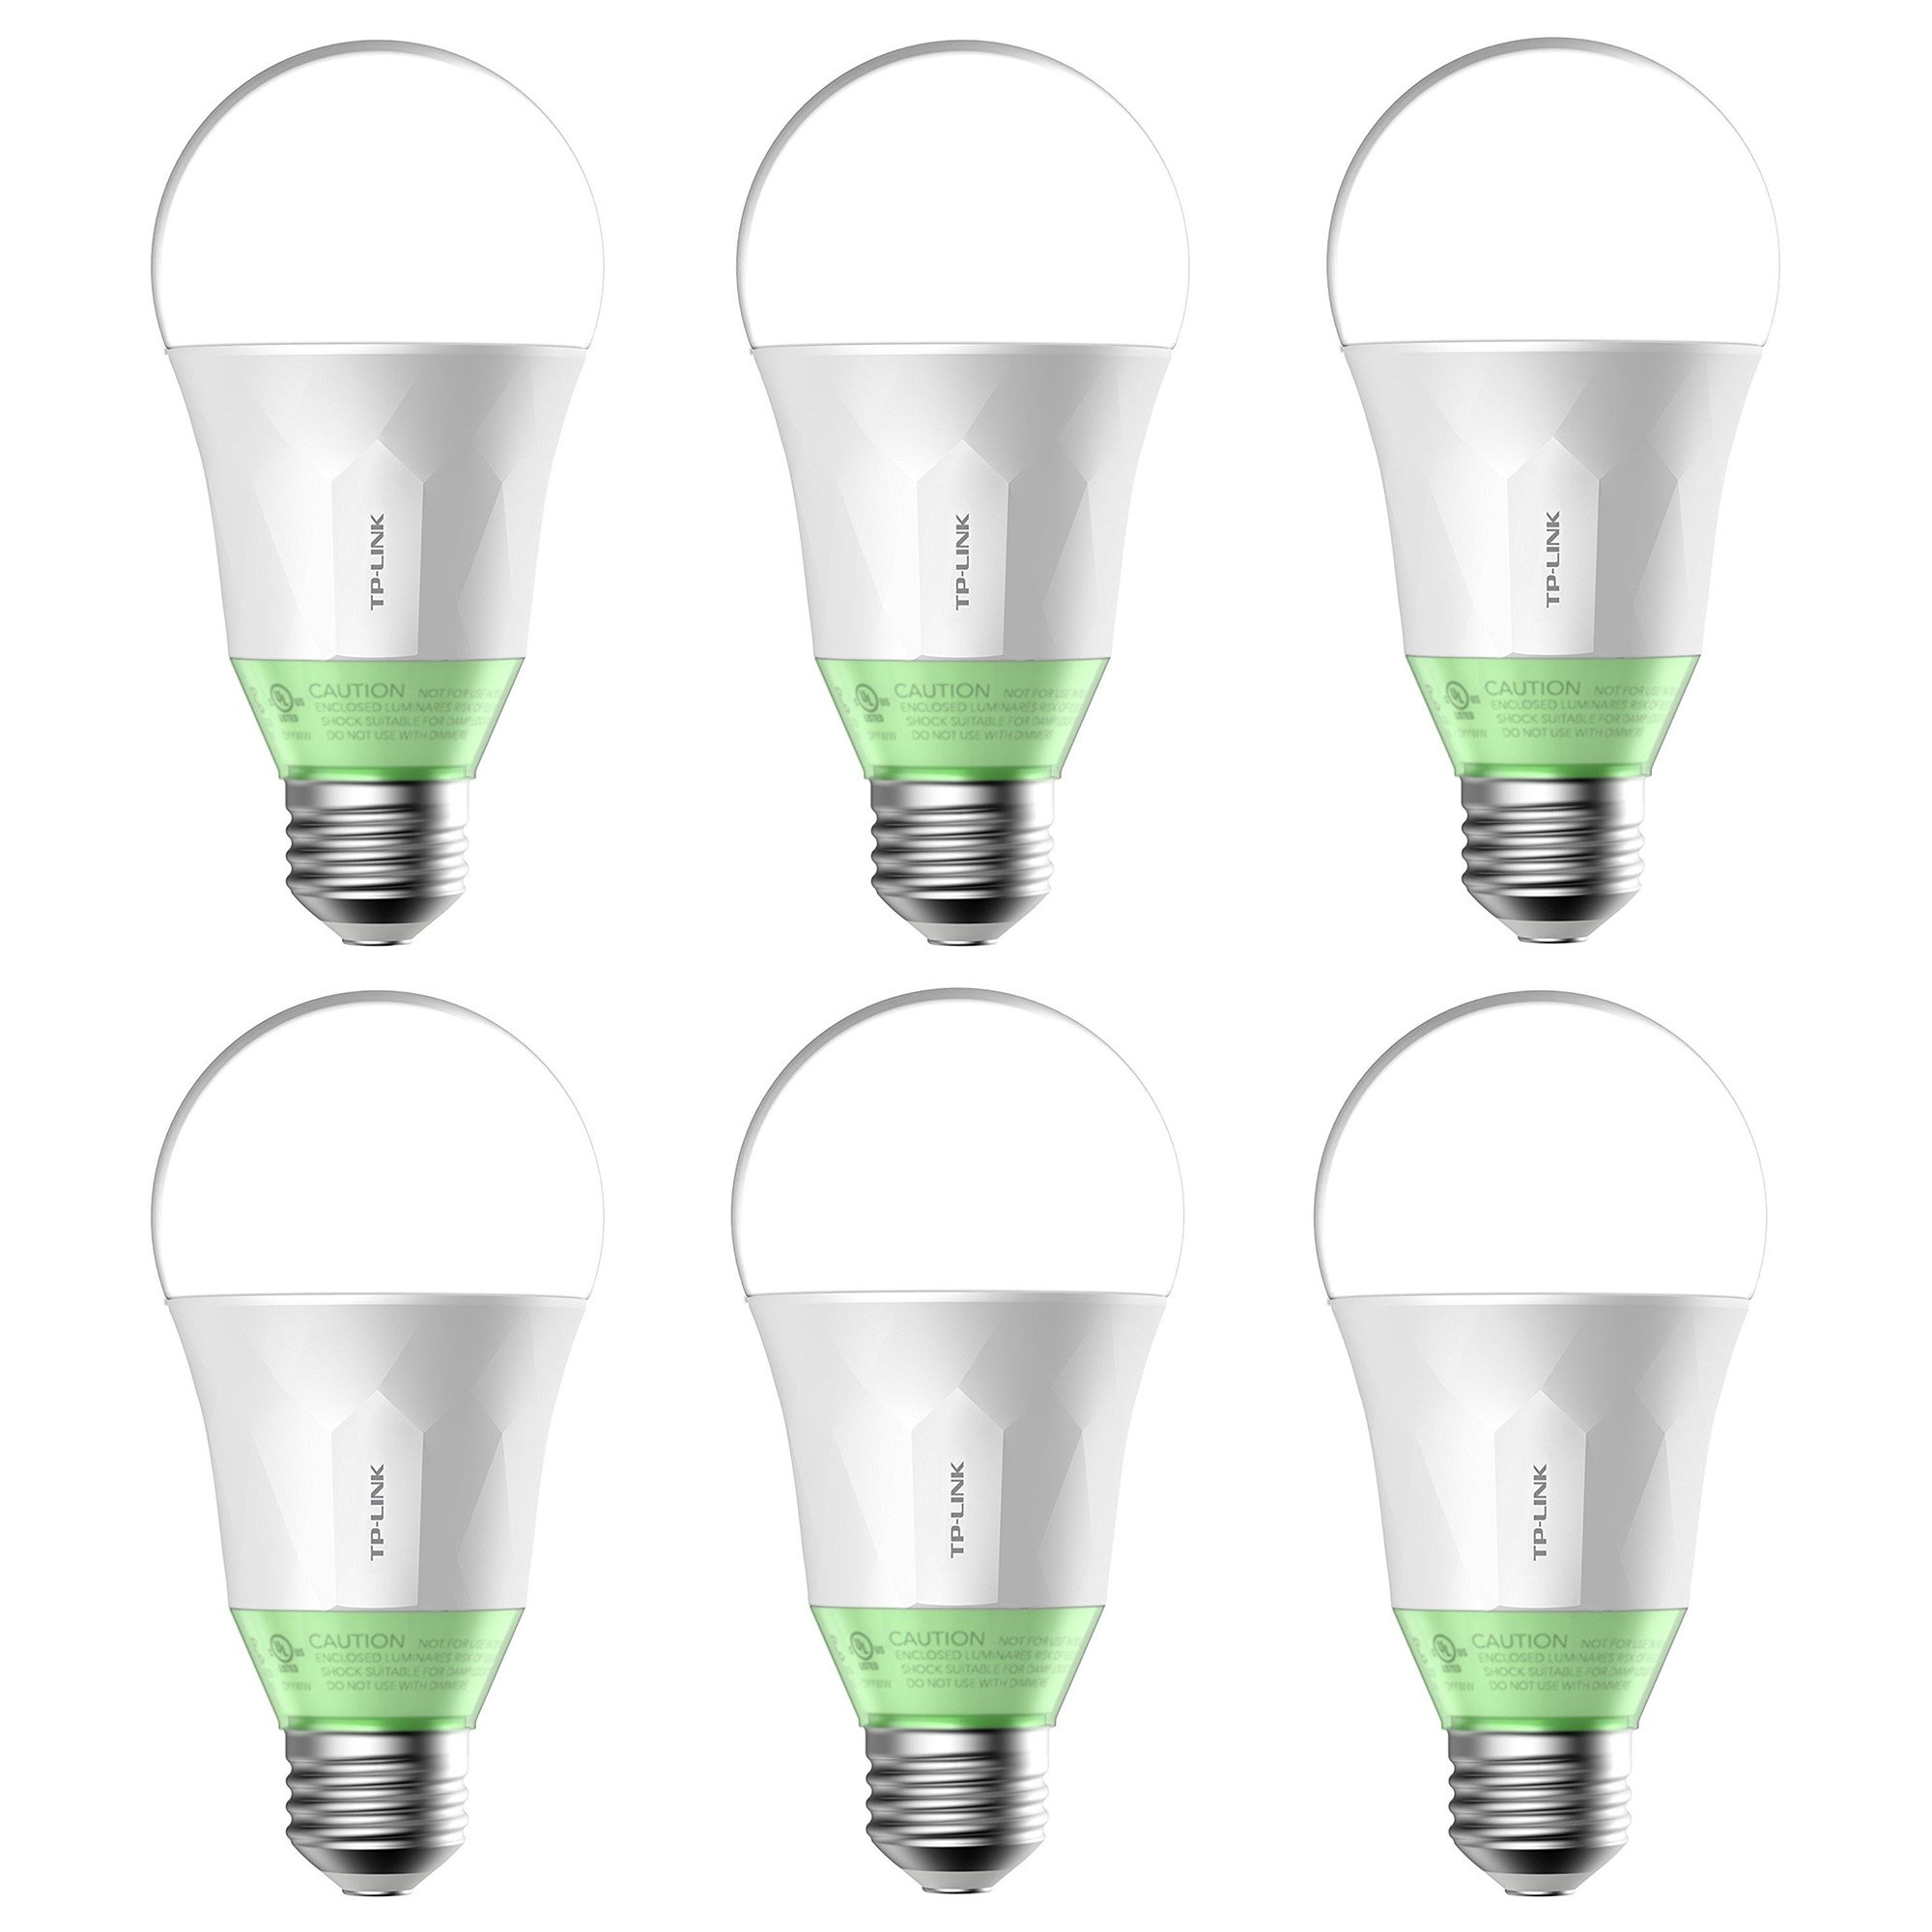 TP-Link 60W Energy Saving Smart Wi-Fi LED Light Bulb w/ Dimmable Light (6 Pack)